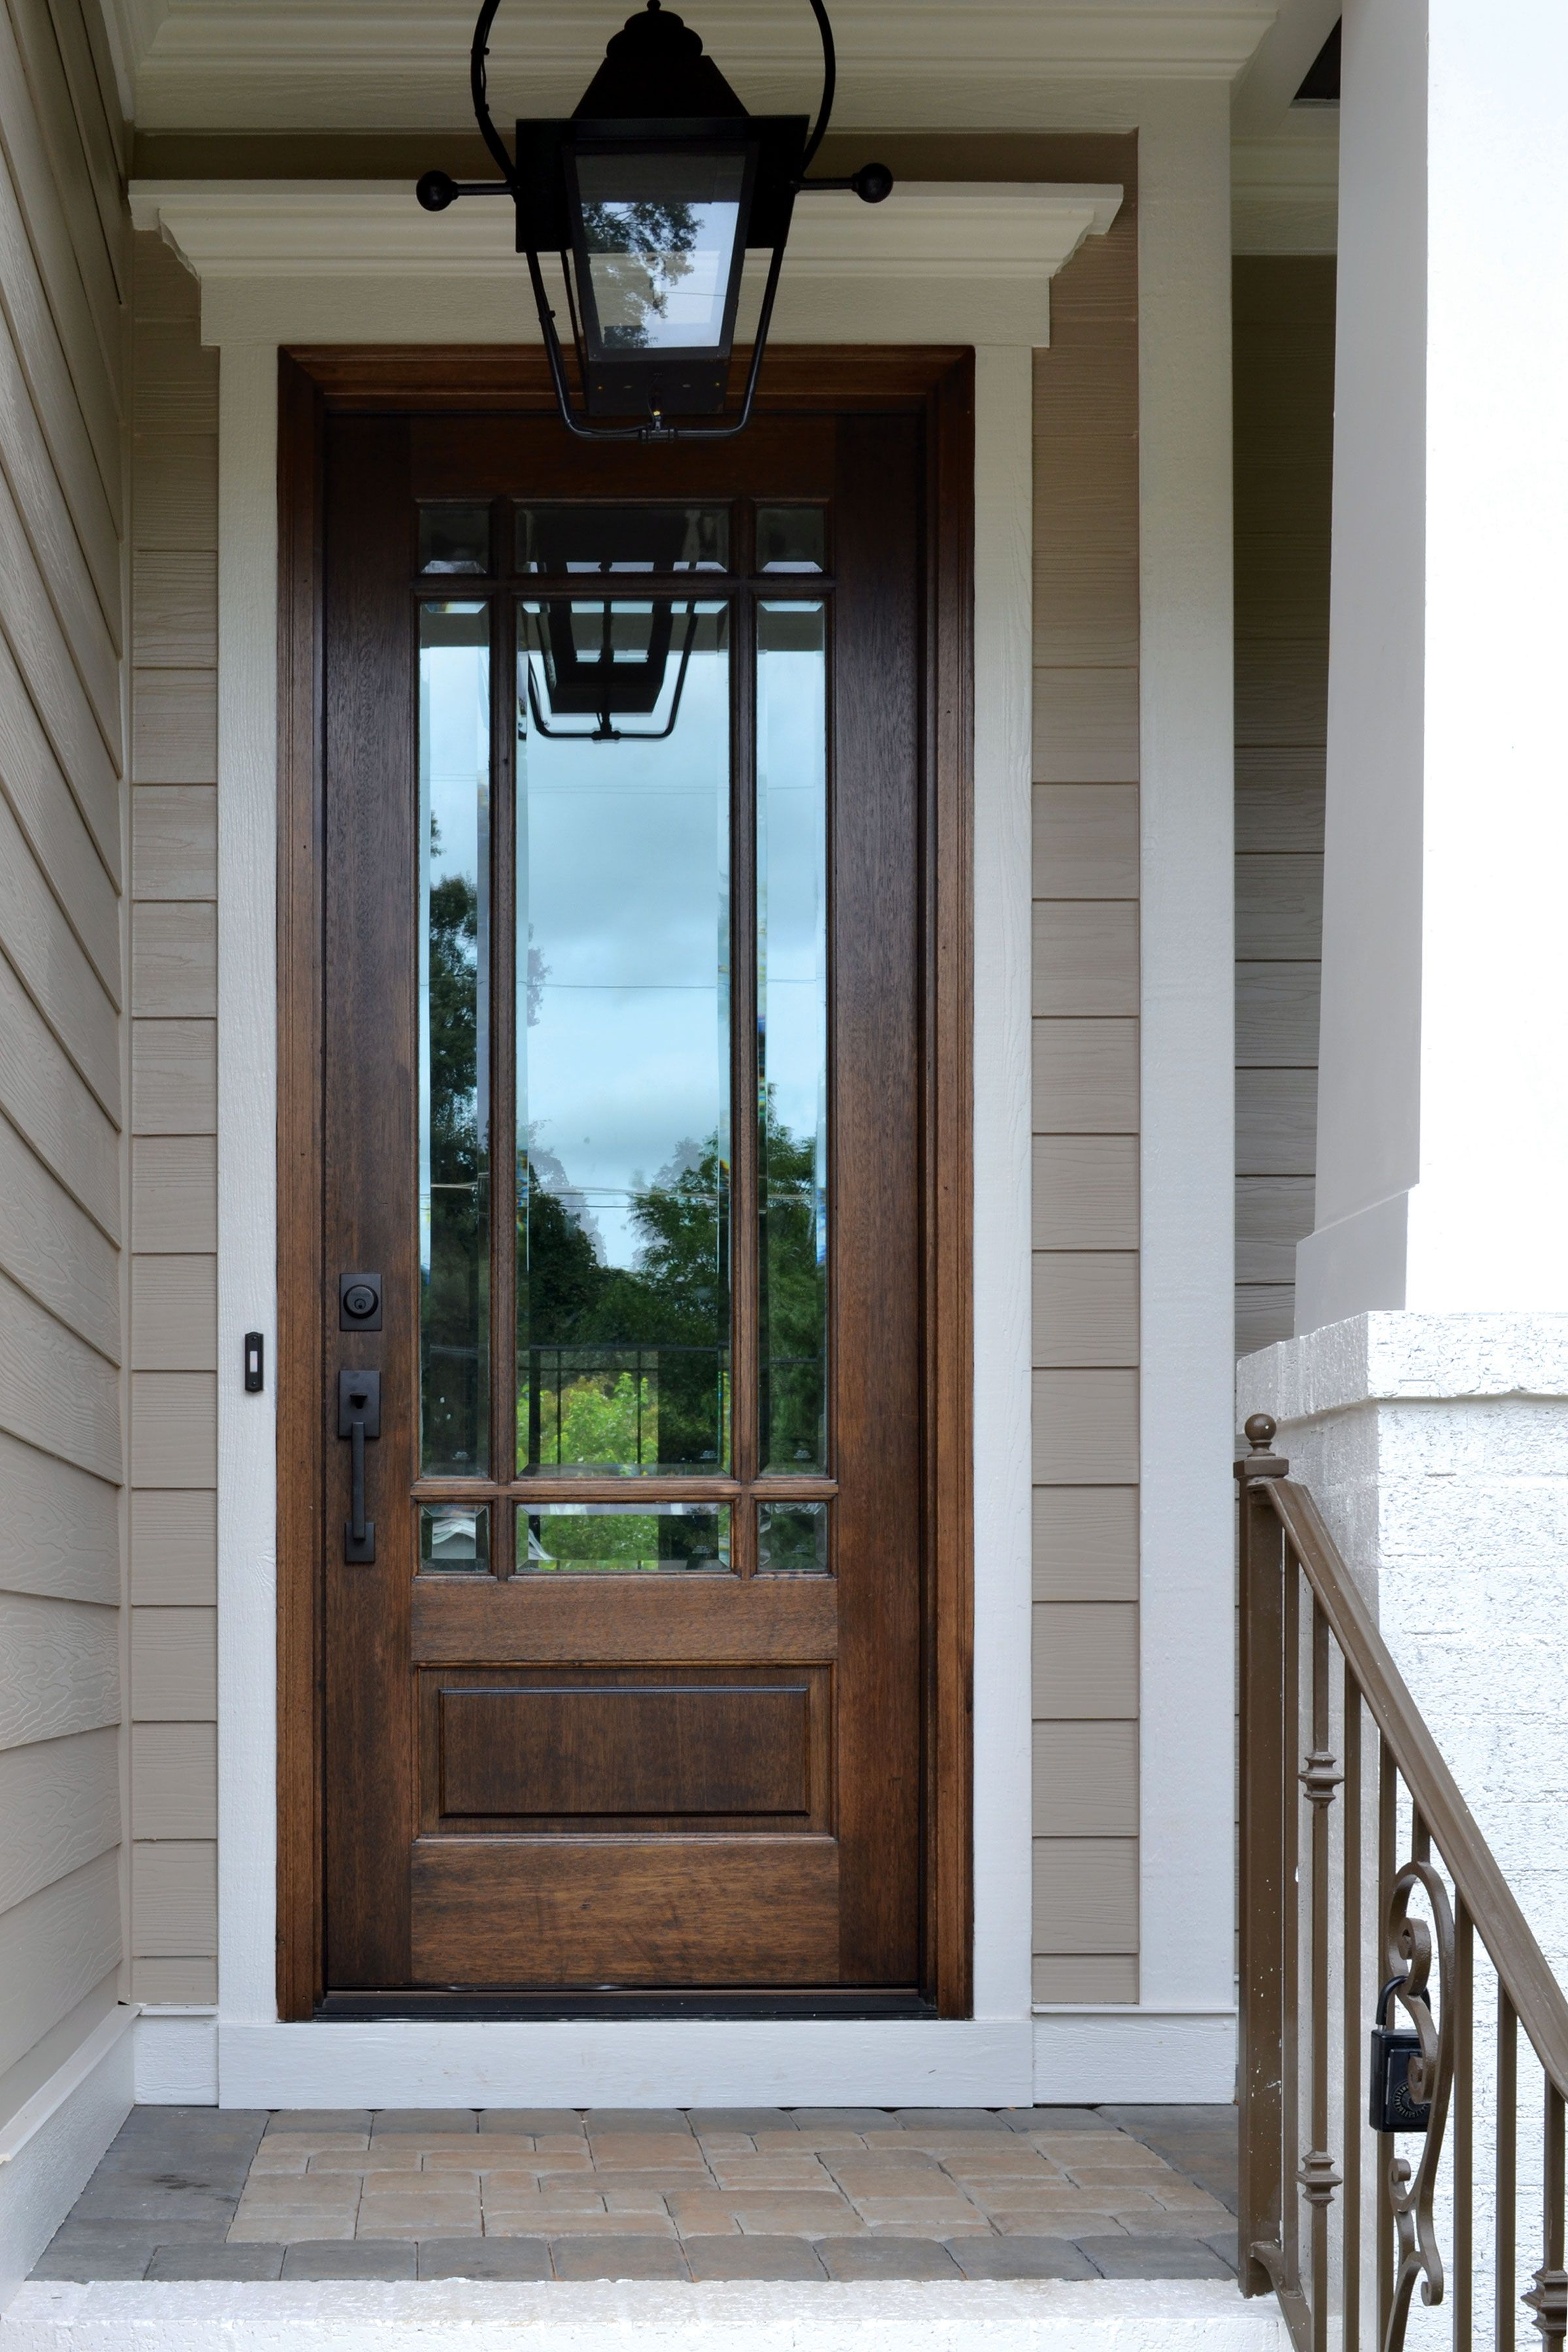 Alexandria TDL 9LT 8/0 Door With Clear Beveled Glass